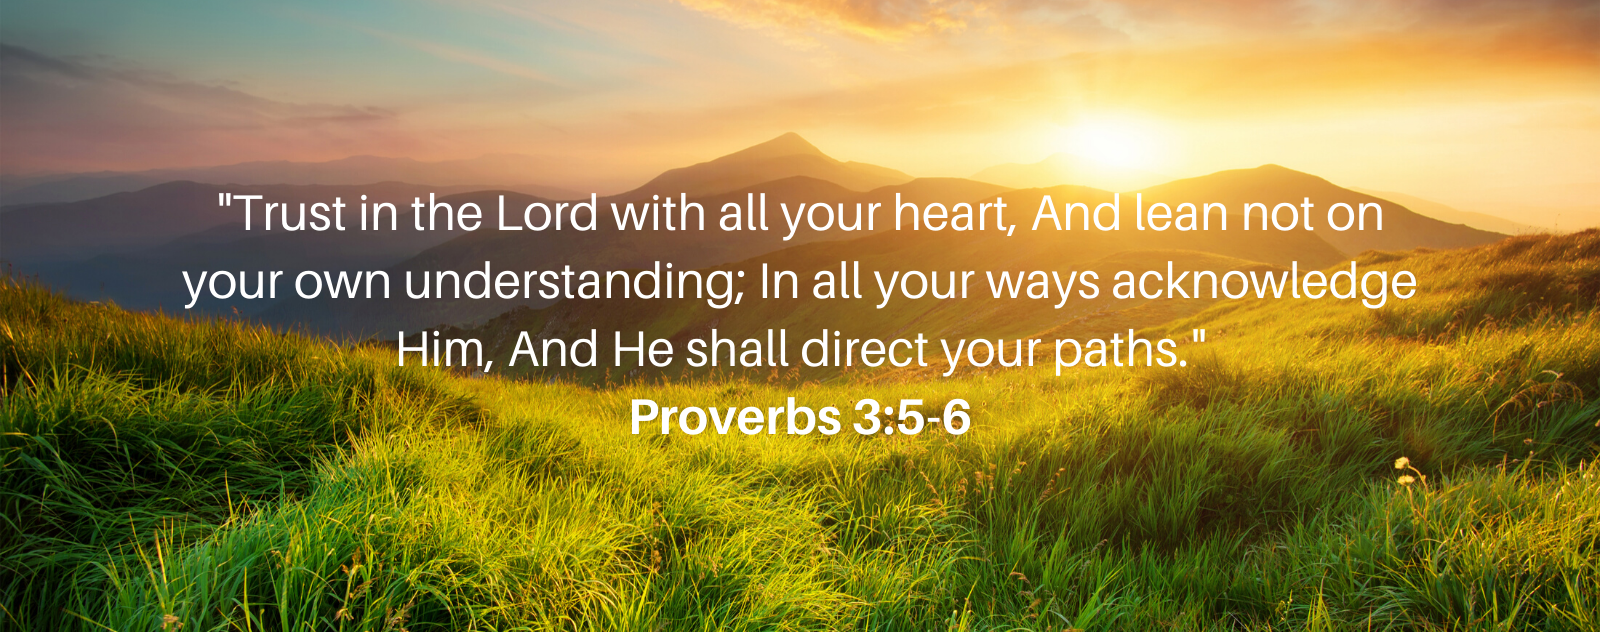 """""""Trust in the Lord"""" The Meaning of Proverbs 3:5-6 